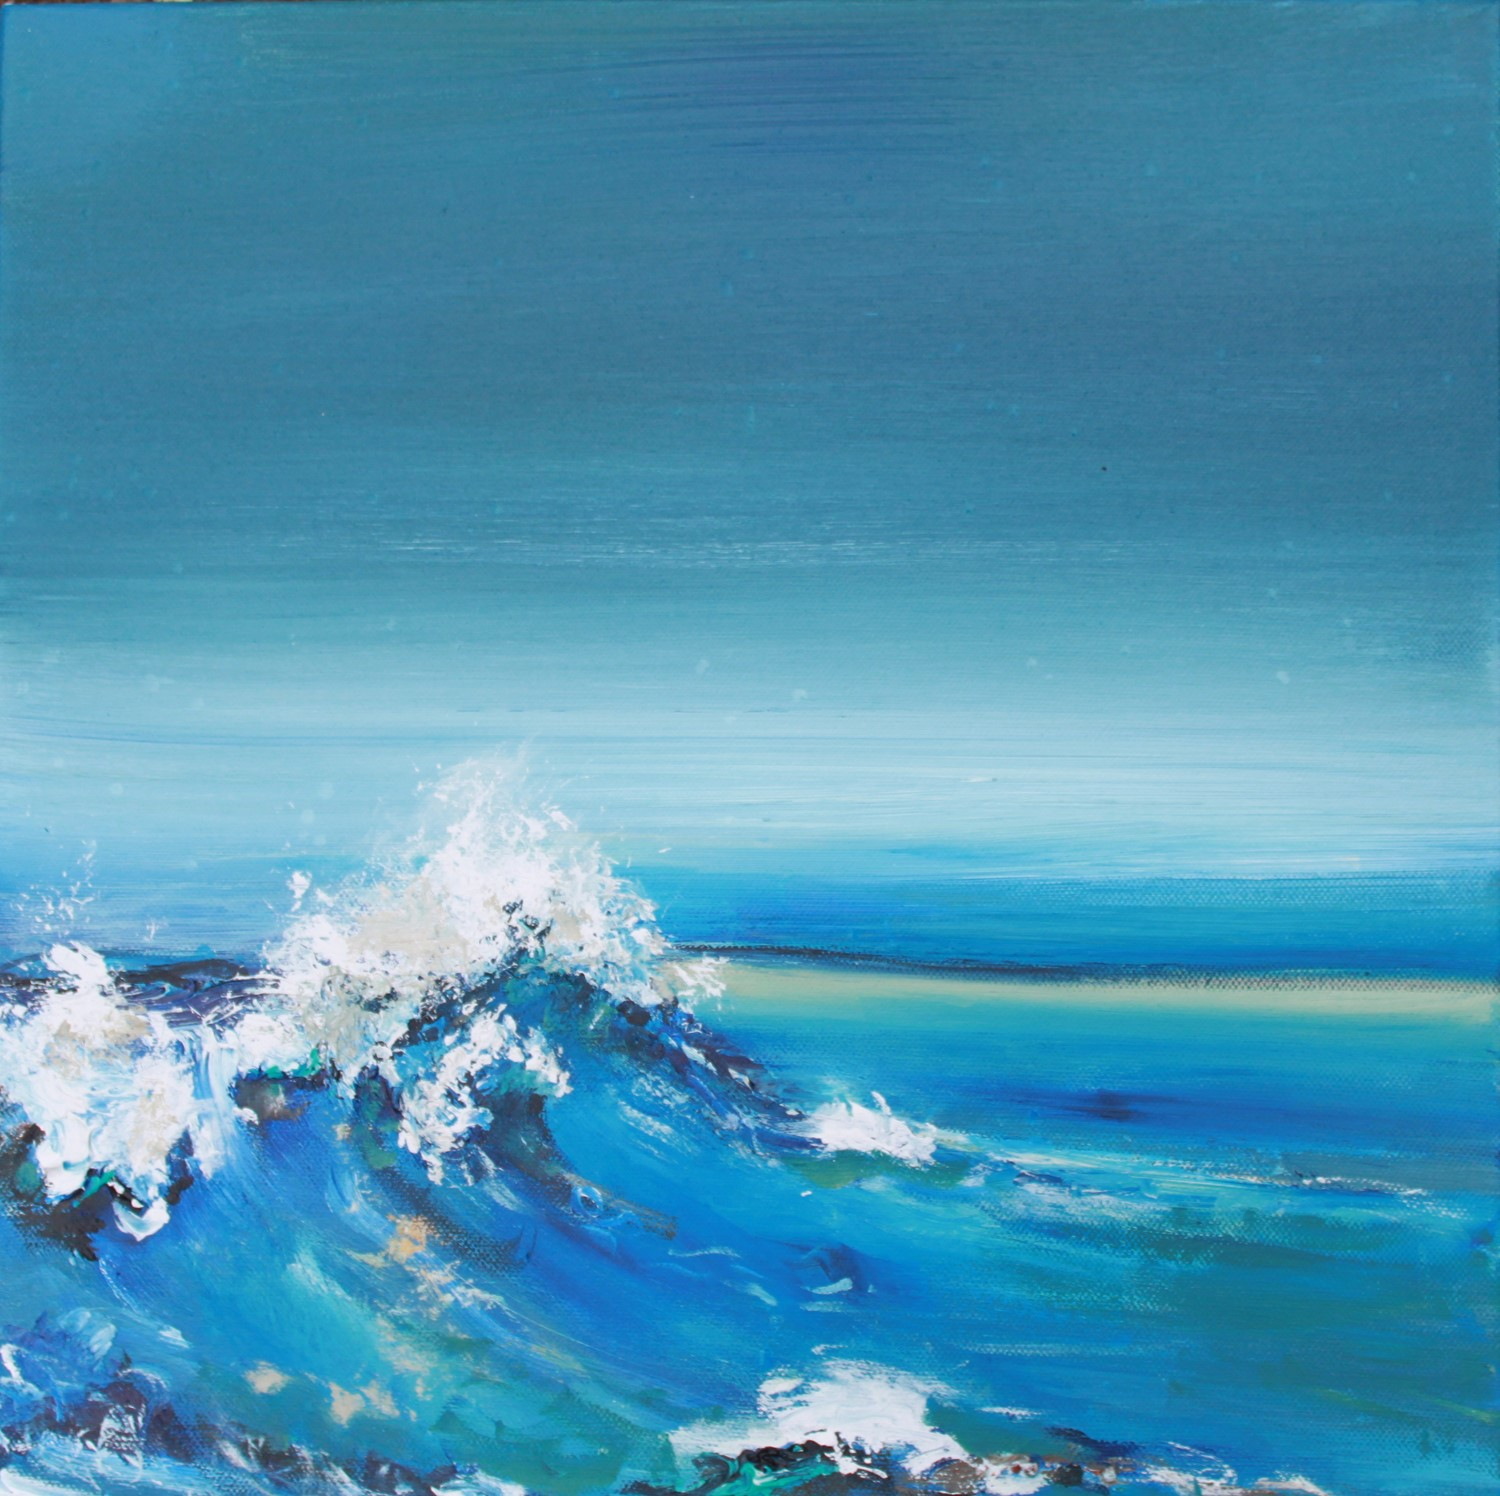 'Counting waves' by artist Rosanne Barr